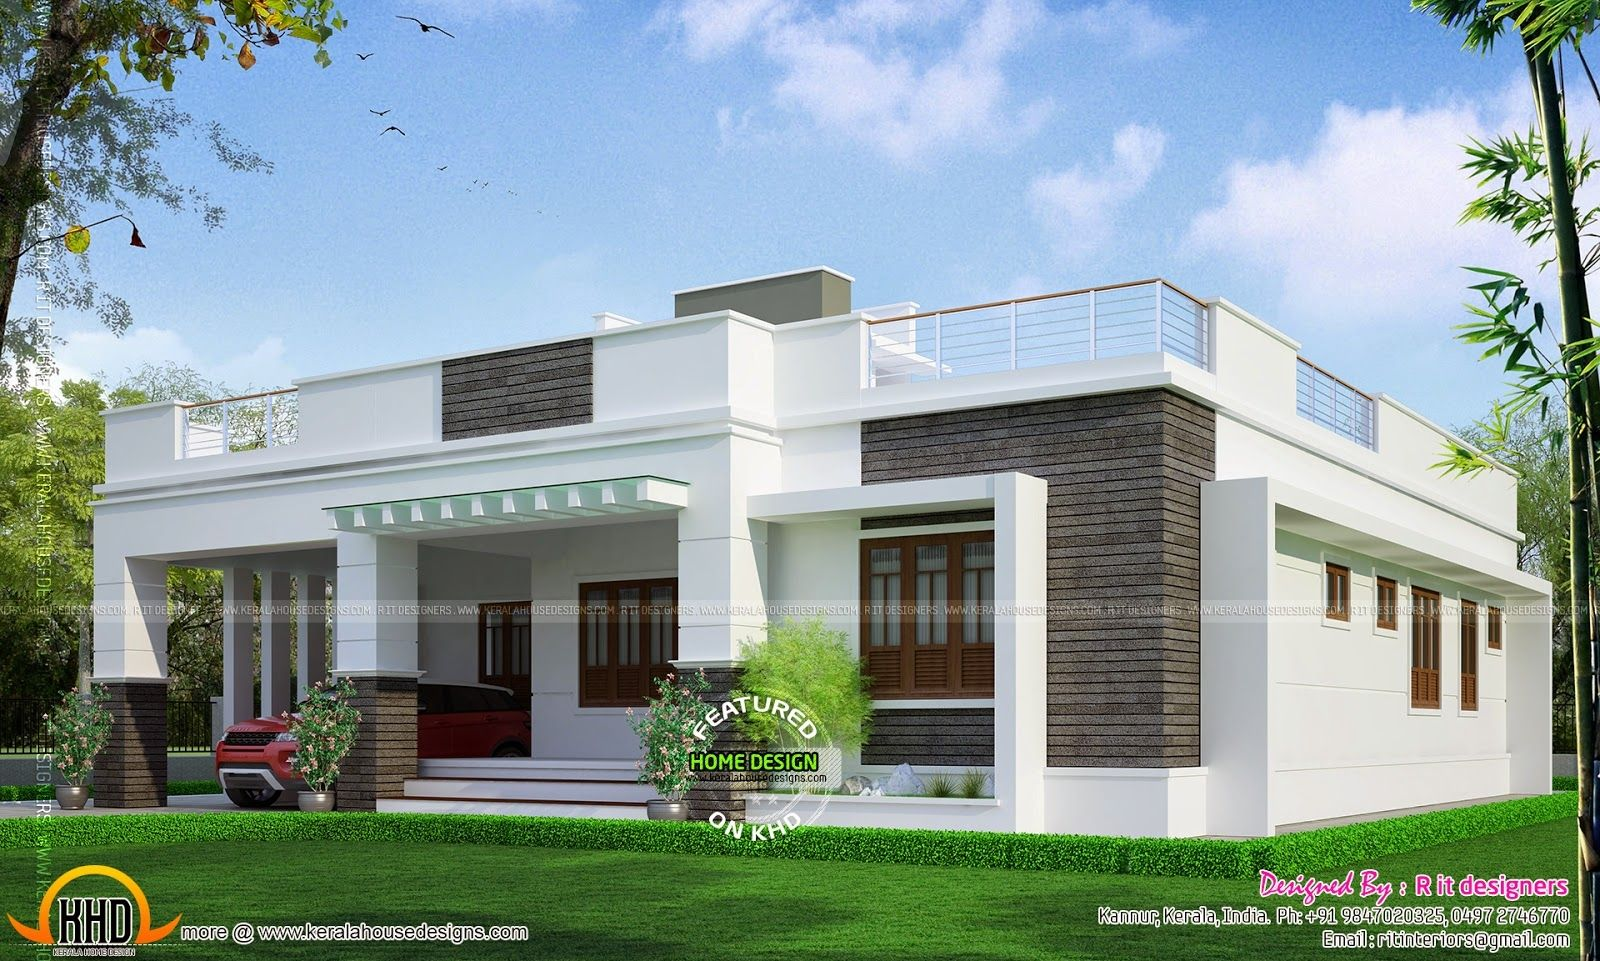 House designs floor plans kerala patterns of  real estate property could be transformed into interactive or also pin by althaf sharafudeen on design pinterest rh